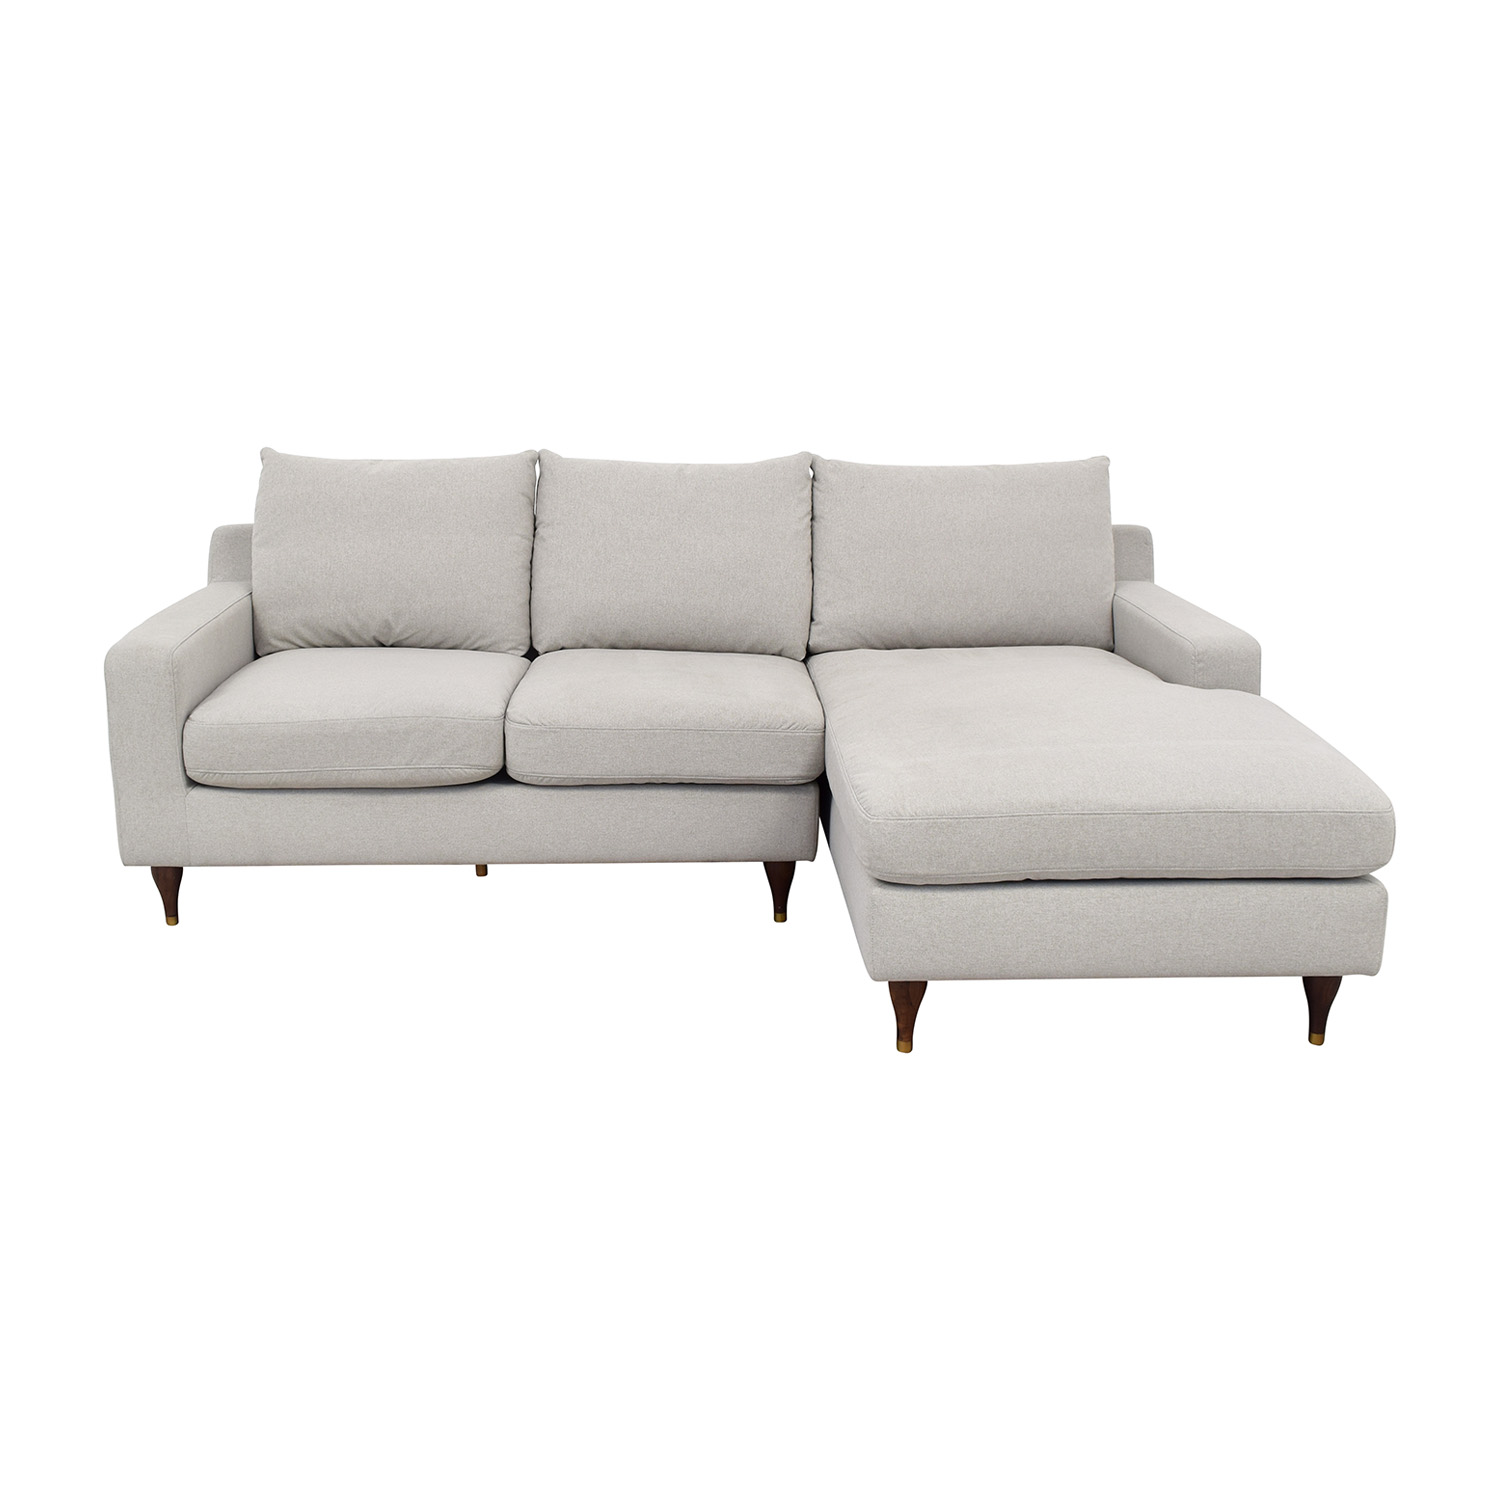 shop Interior Define Interior Define Sloan Sectional Sofa with Chaise online